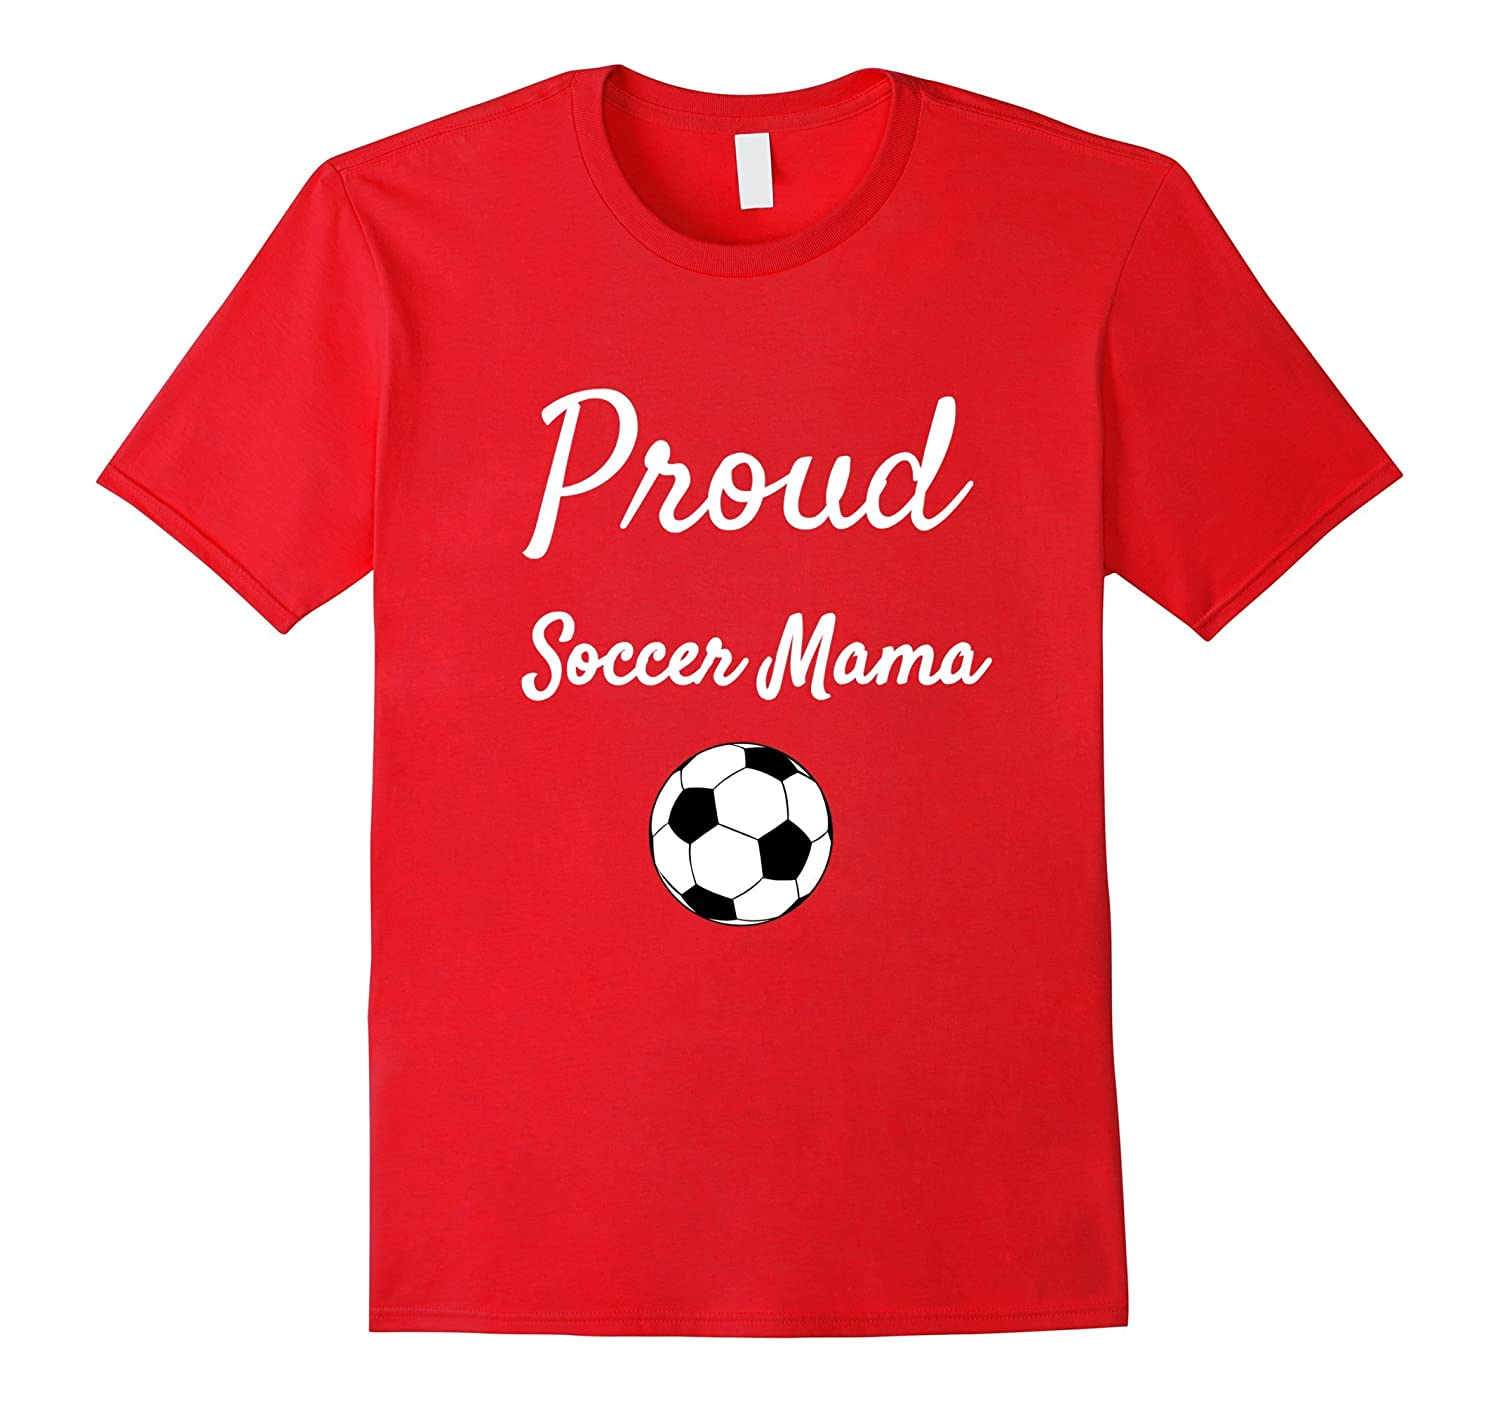 Proud Soccer Mama T-shirt Mom Mommy Ma Player child-FL